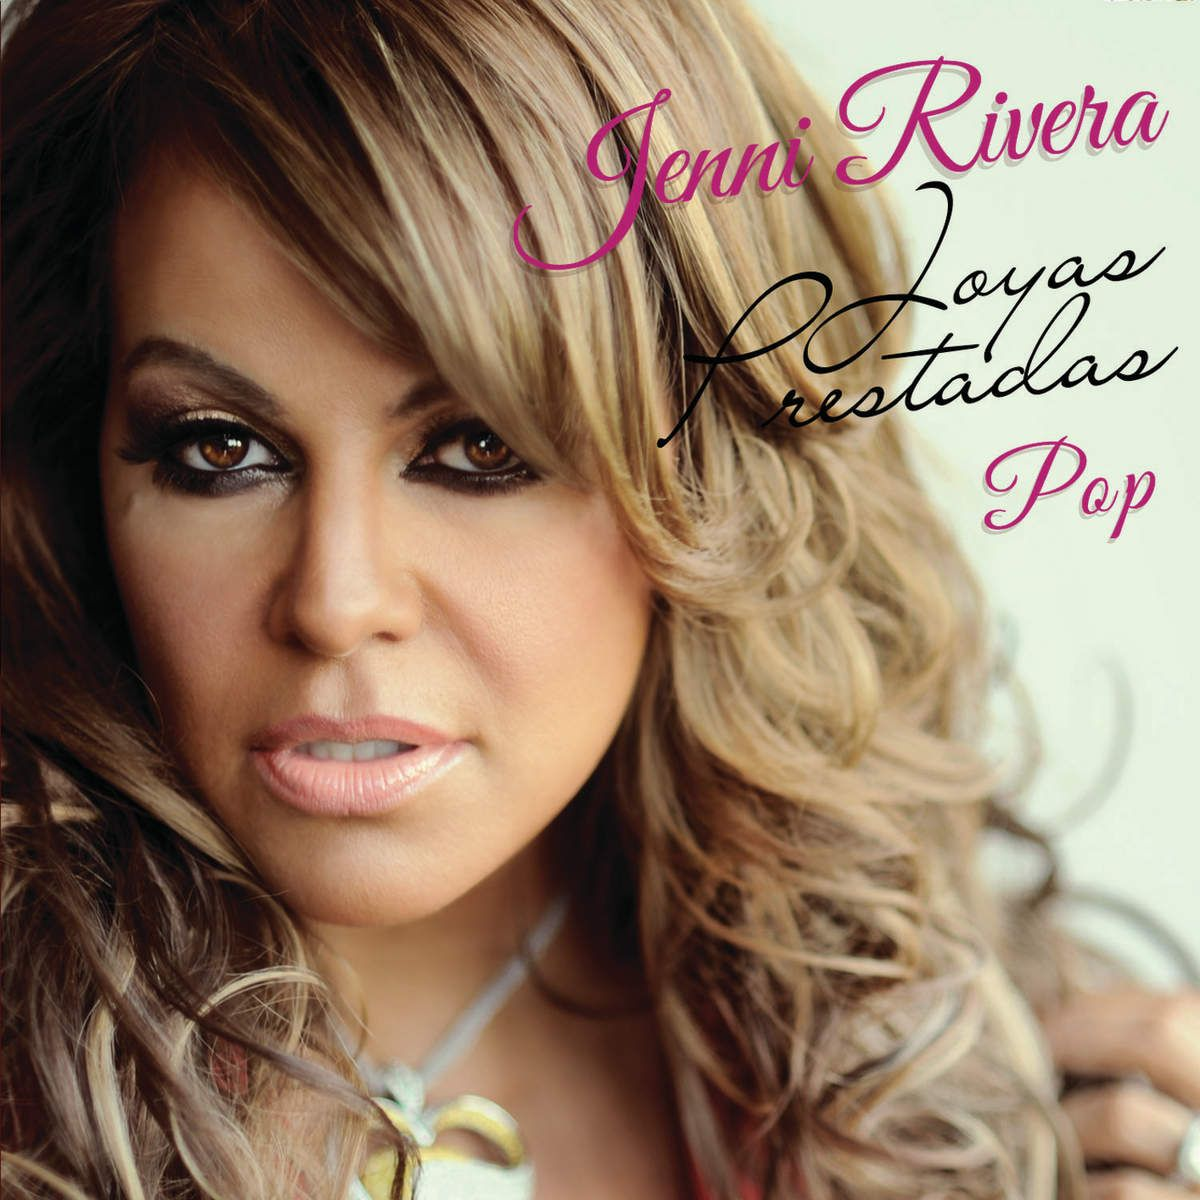 Jenni Rivera - Joyas Prestadas Pop album cover